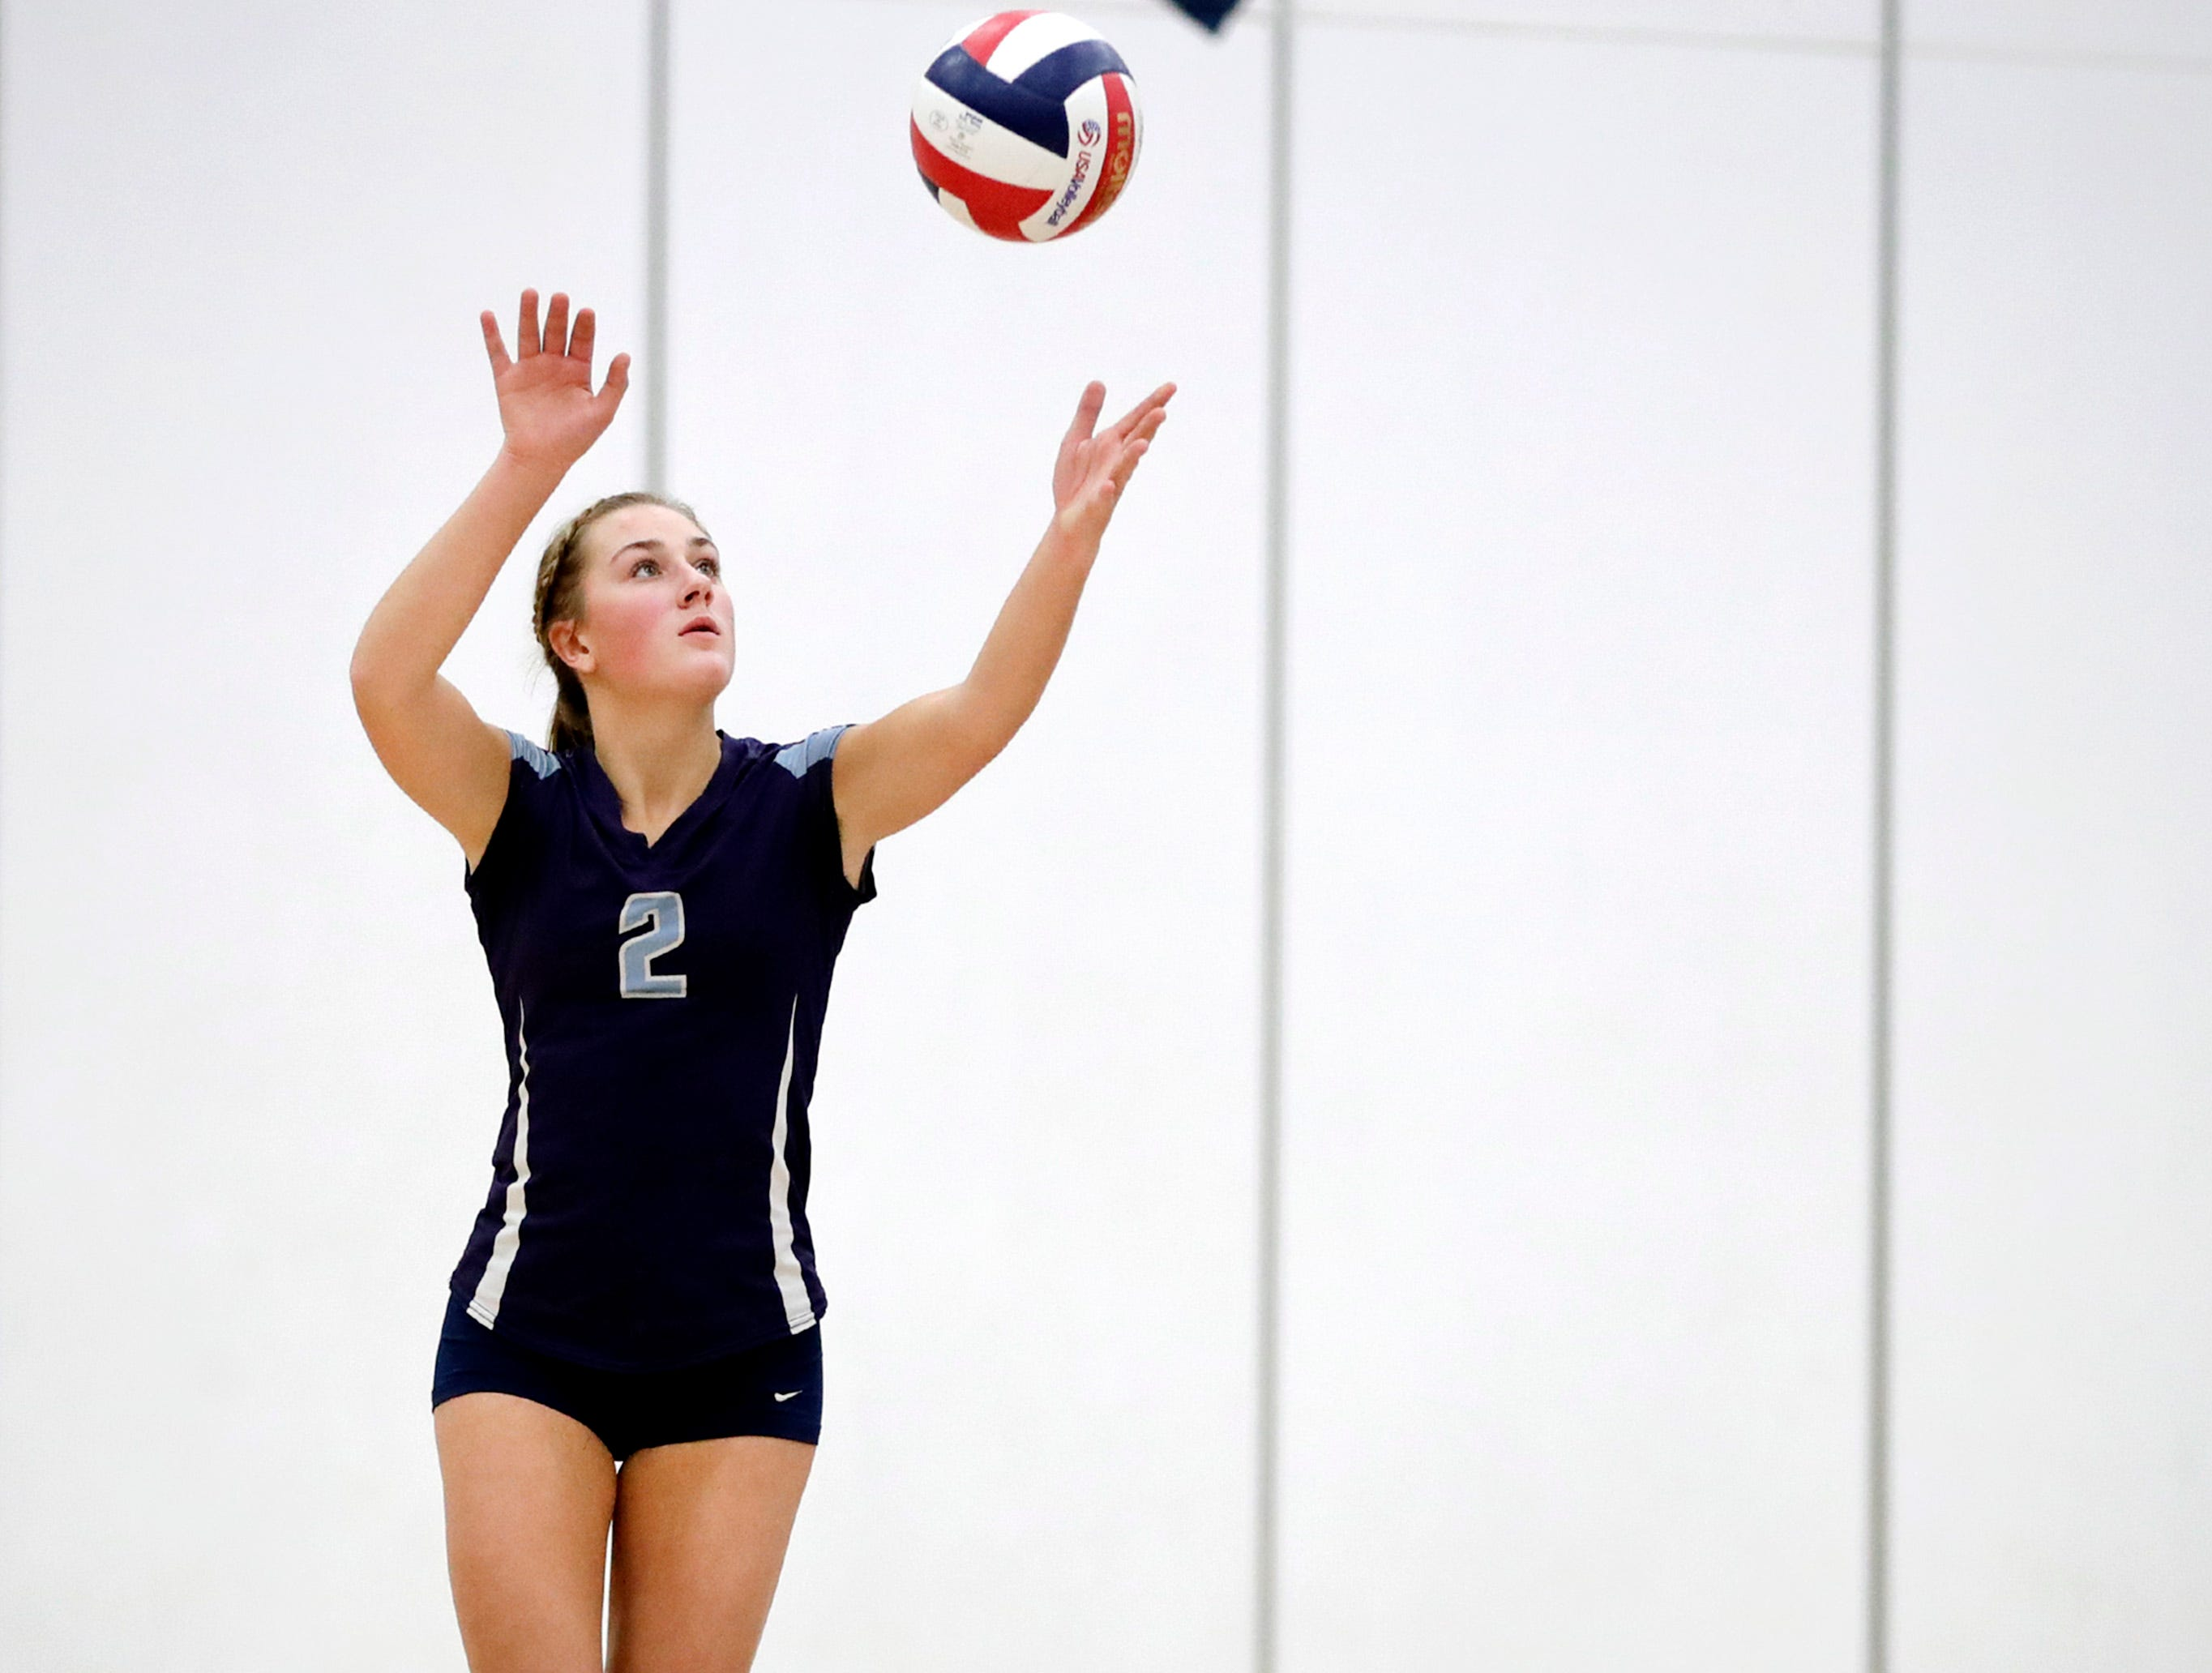 Little Chute High SchoolÕs Gabi Roemer serves to Xavier High School during their Division 2 semifinal match Thursday, Oct. 25, 2018, in Chilton, Wis.